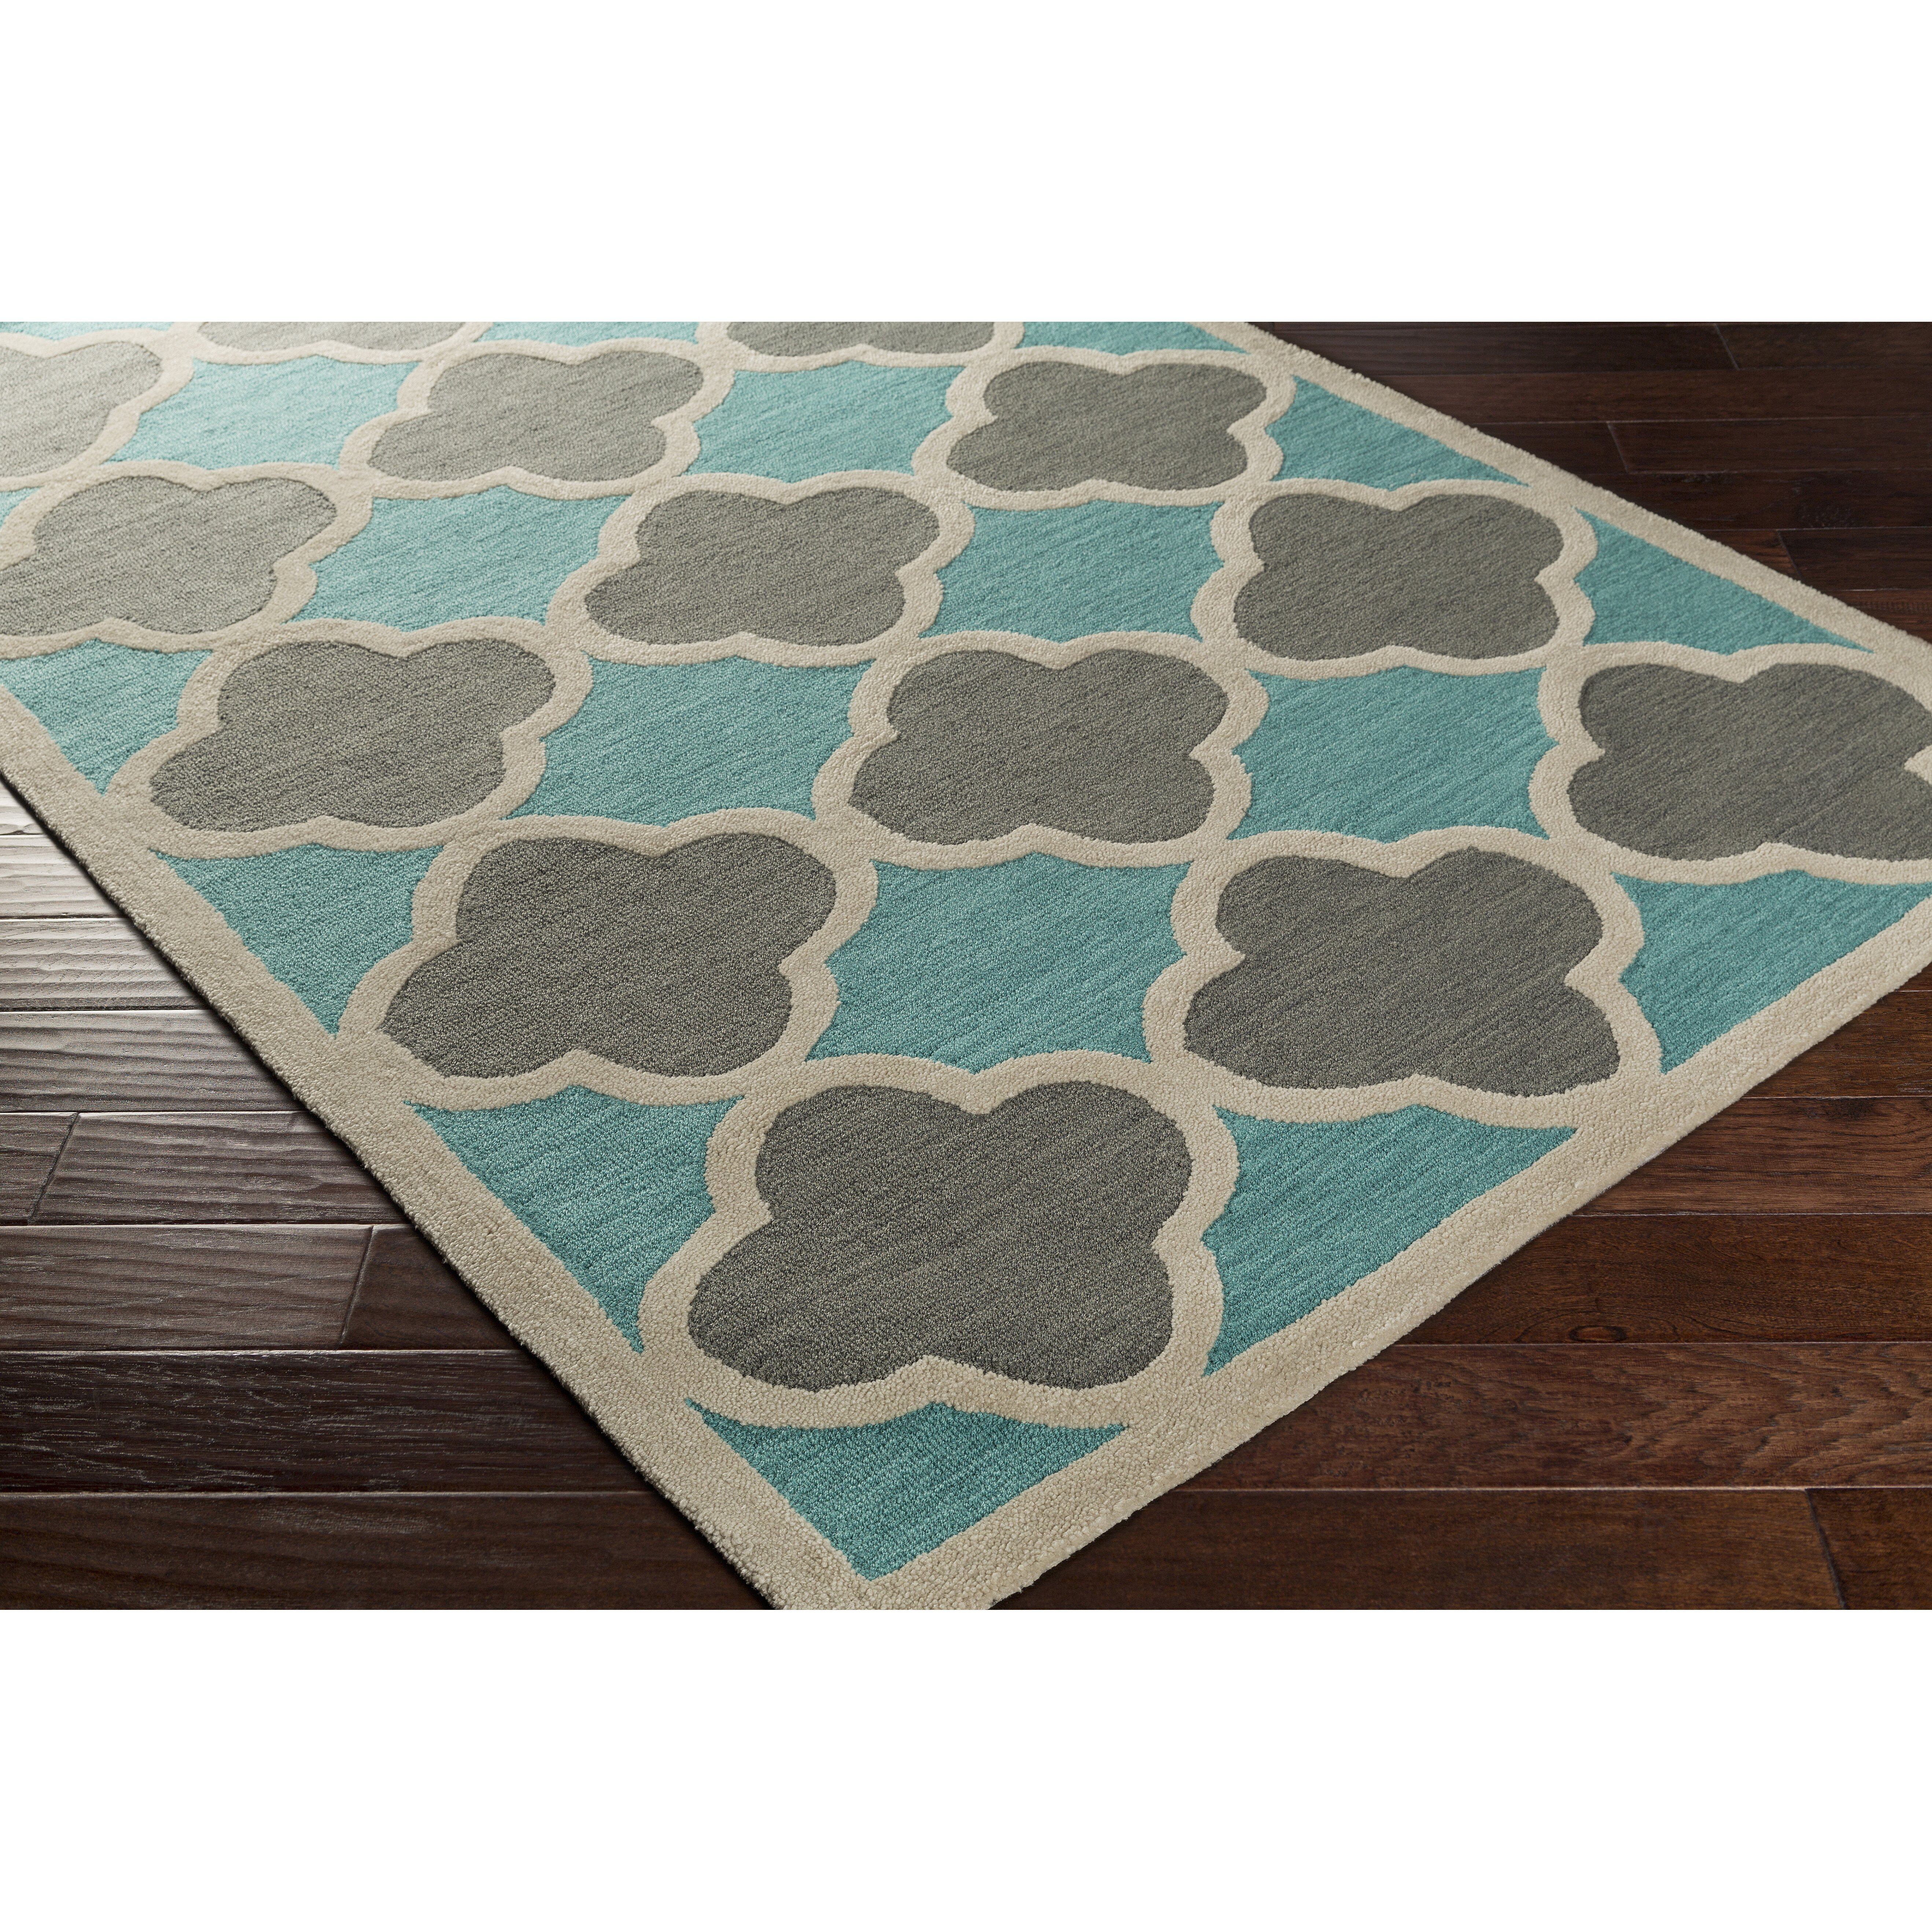 Artistic Weavers Holden Maisie Teal/Gray Area Rug